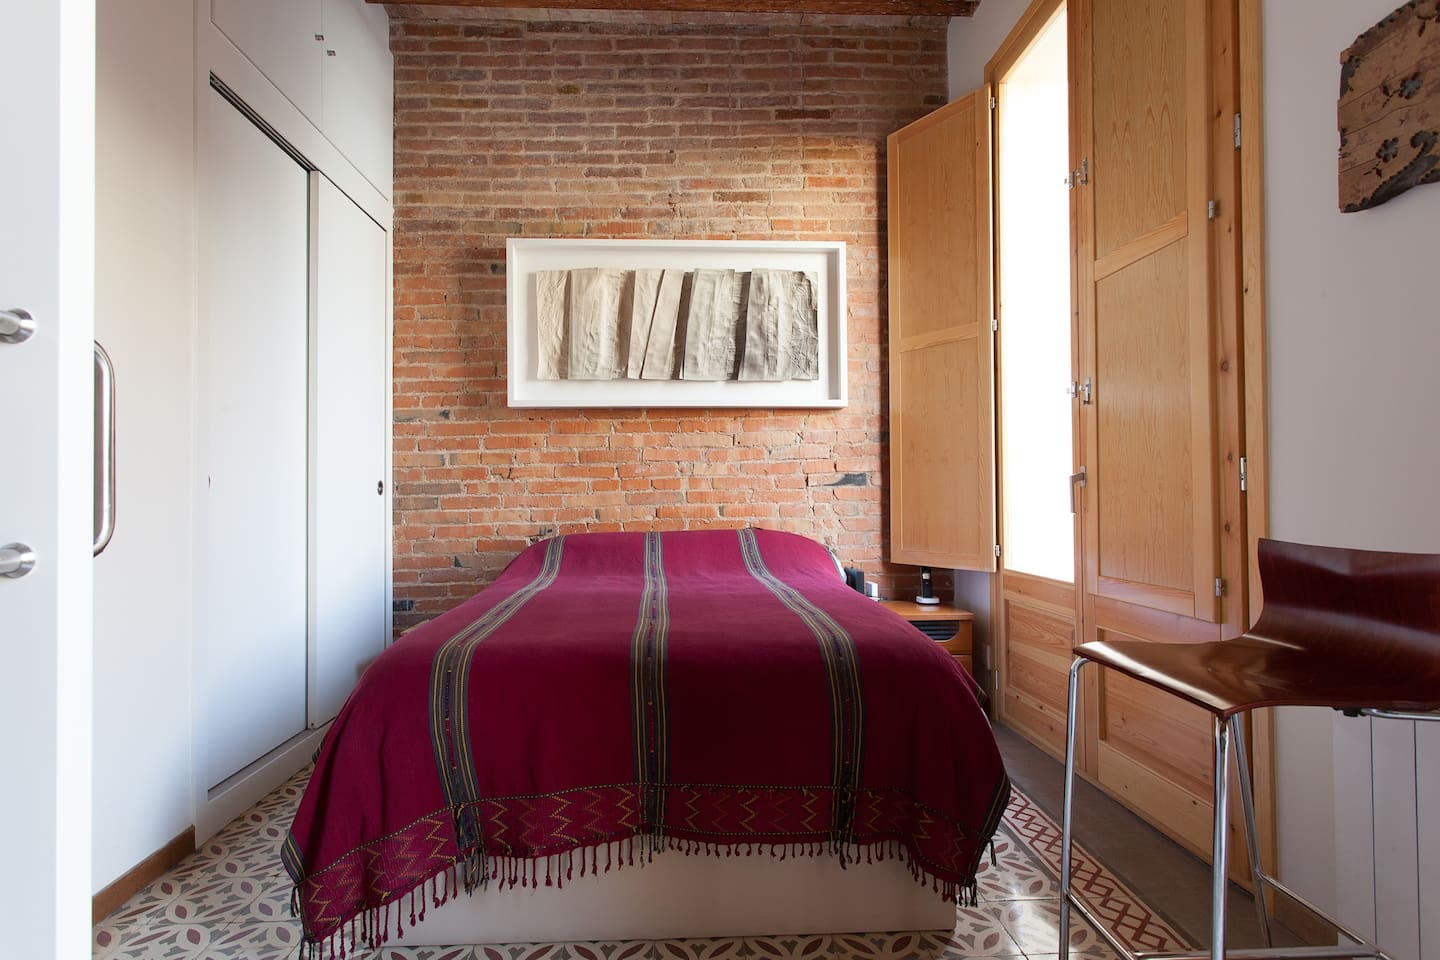 Main double bedroom for rent with ensuite bathroom and inbuilt wardrobe for the exclusive use of airbnb guests